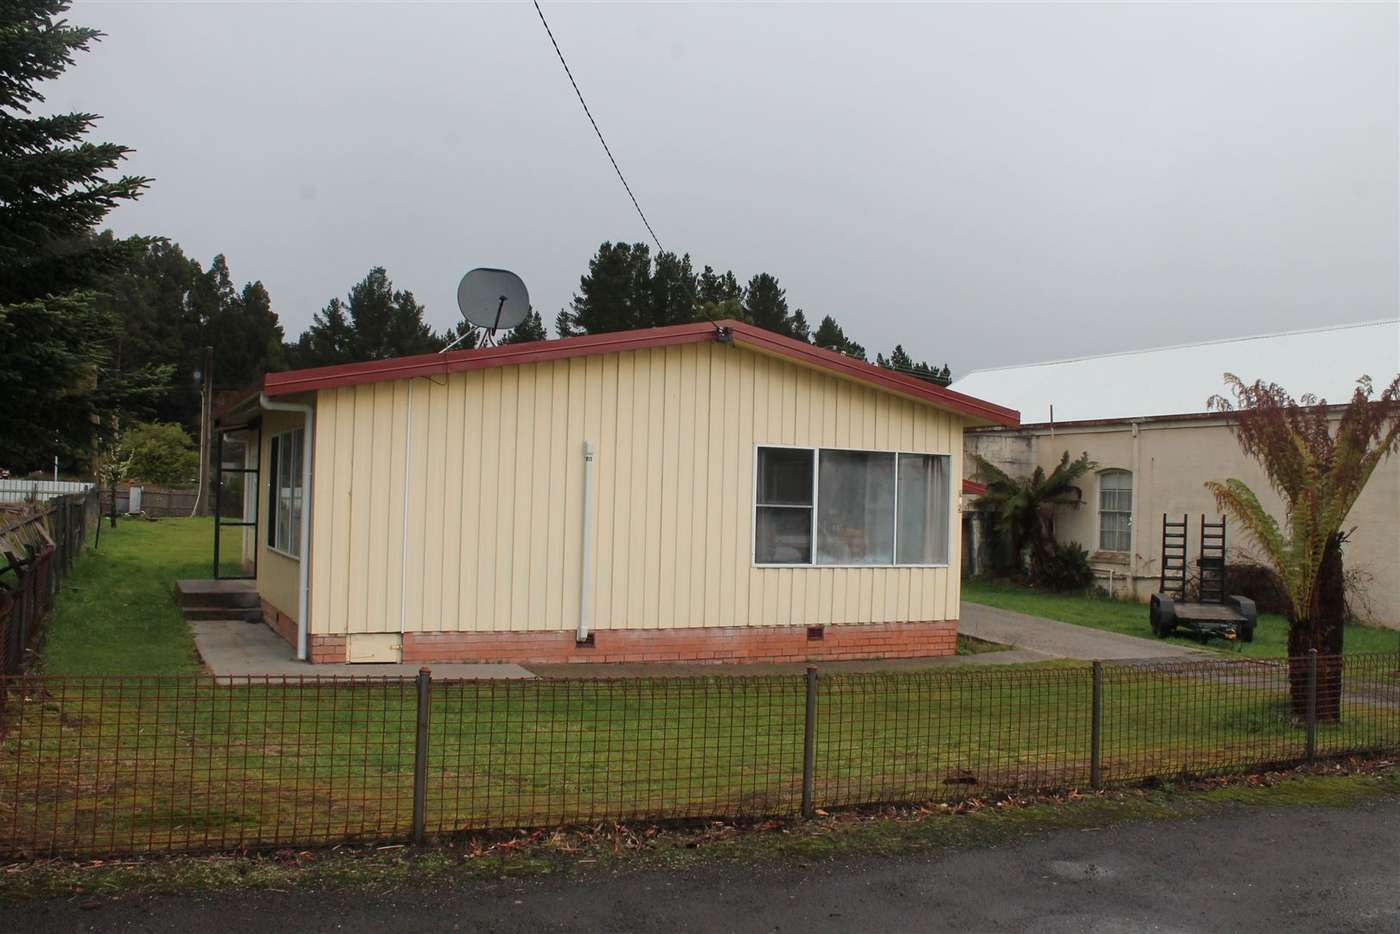 Main view of Homely house listing, 145 Main St, Zeehan TAS 7469